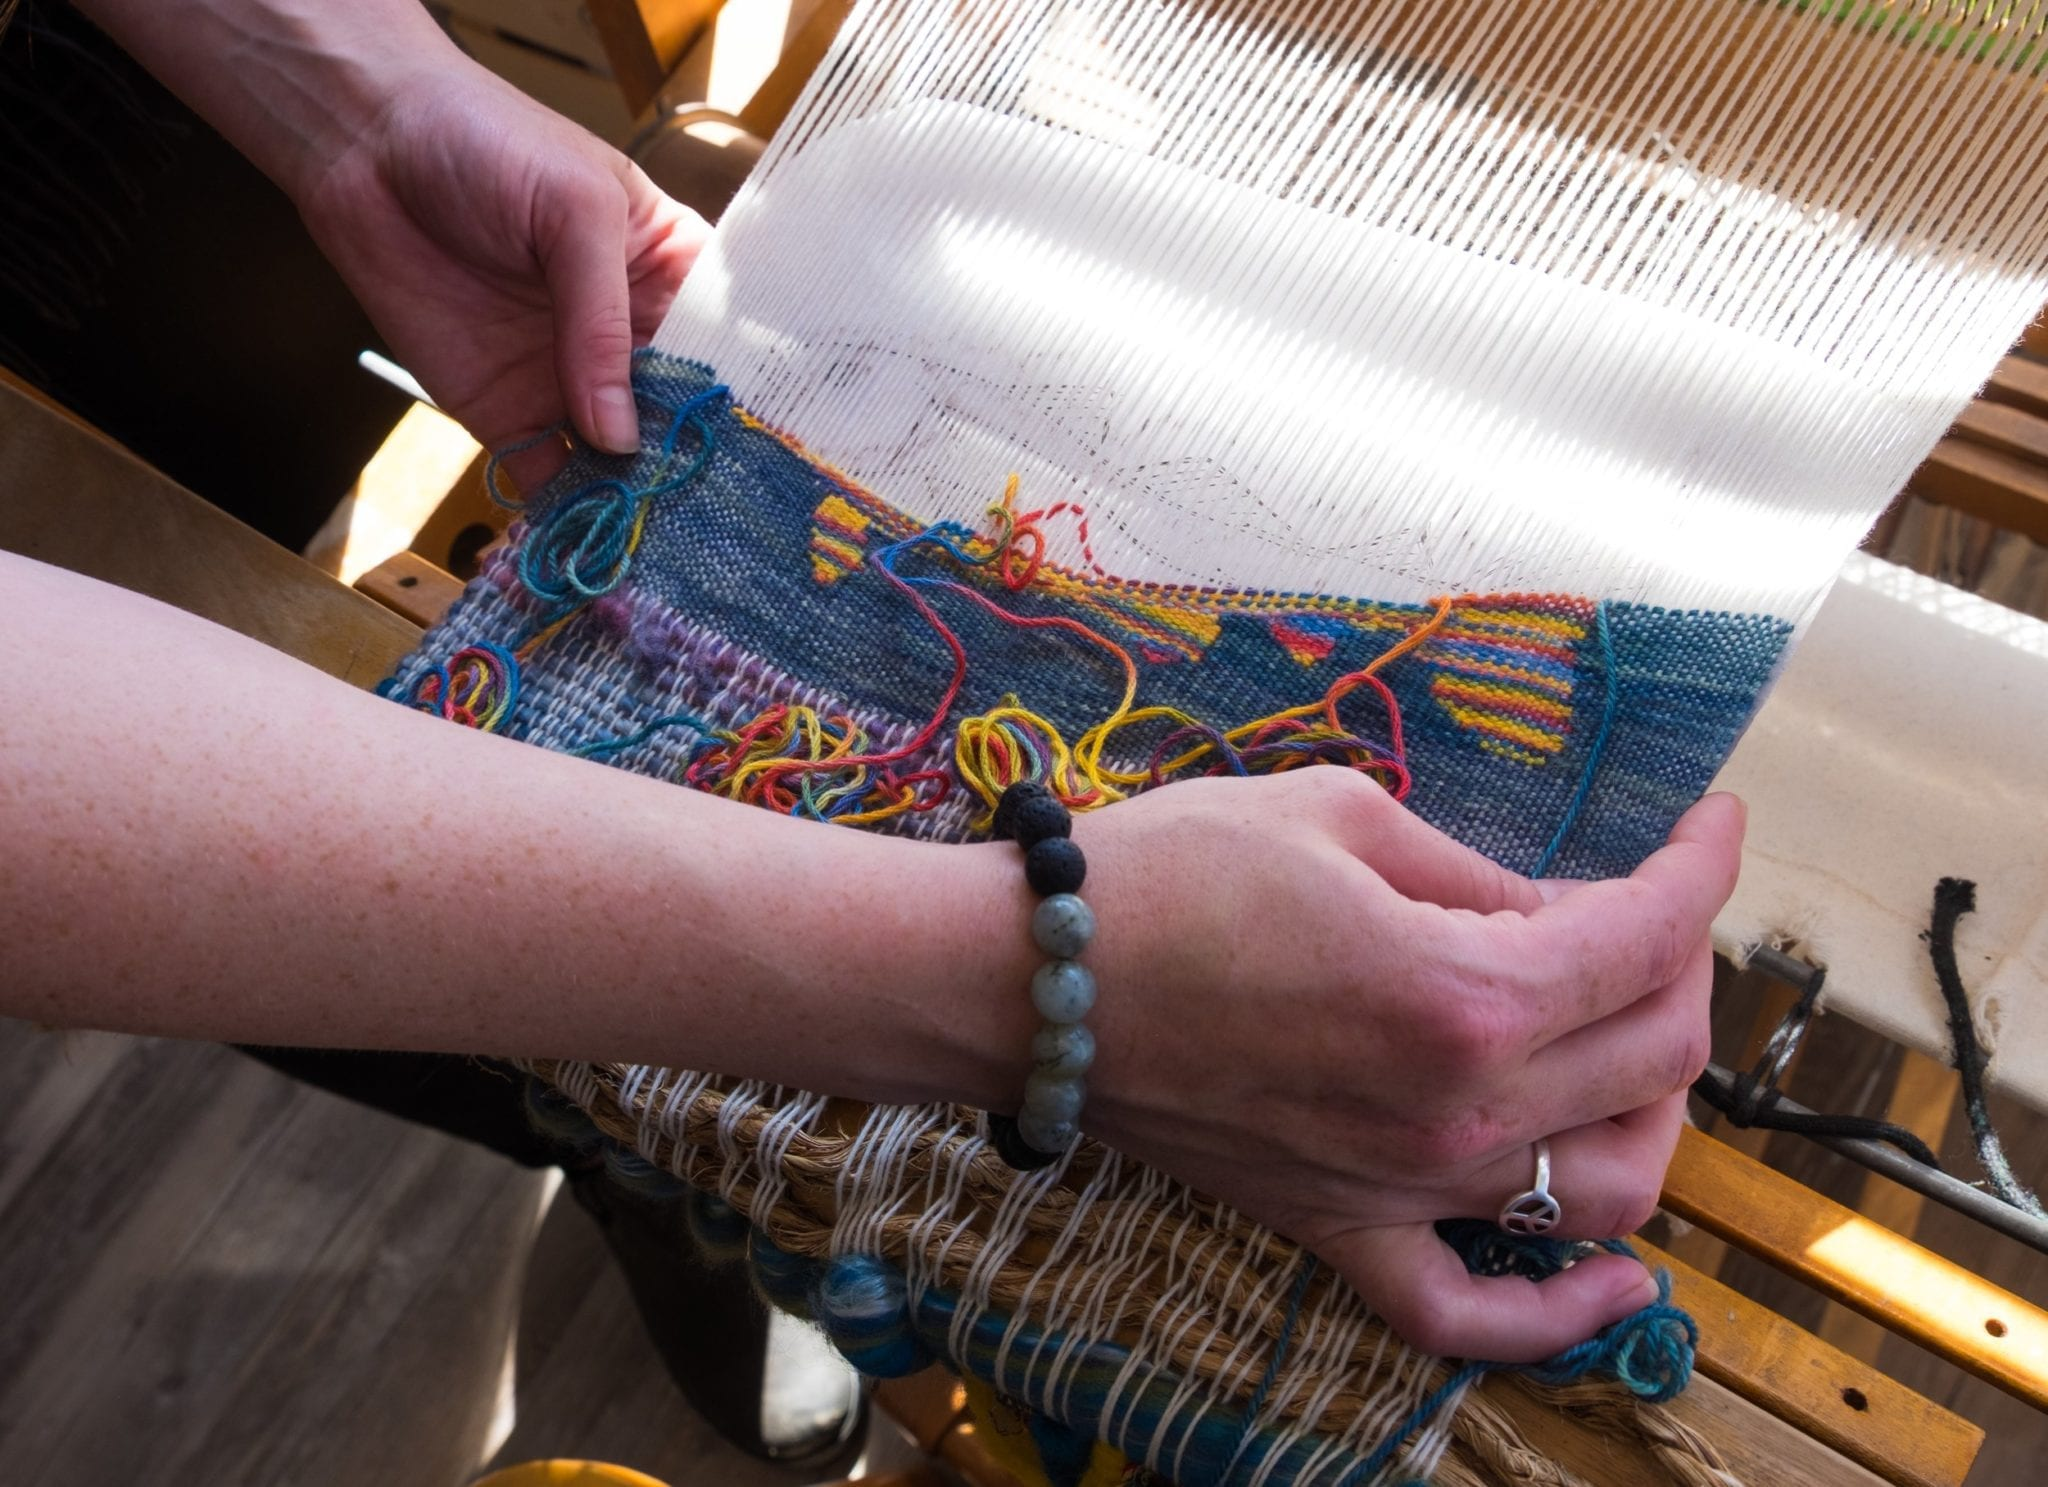 Hands holding up a partially woven fabric fish on a loom in Twillingate.